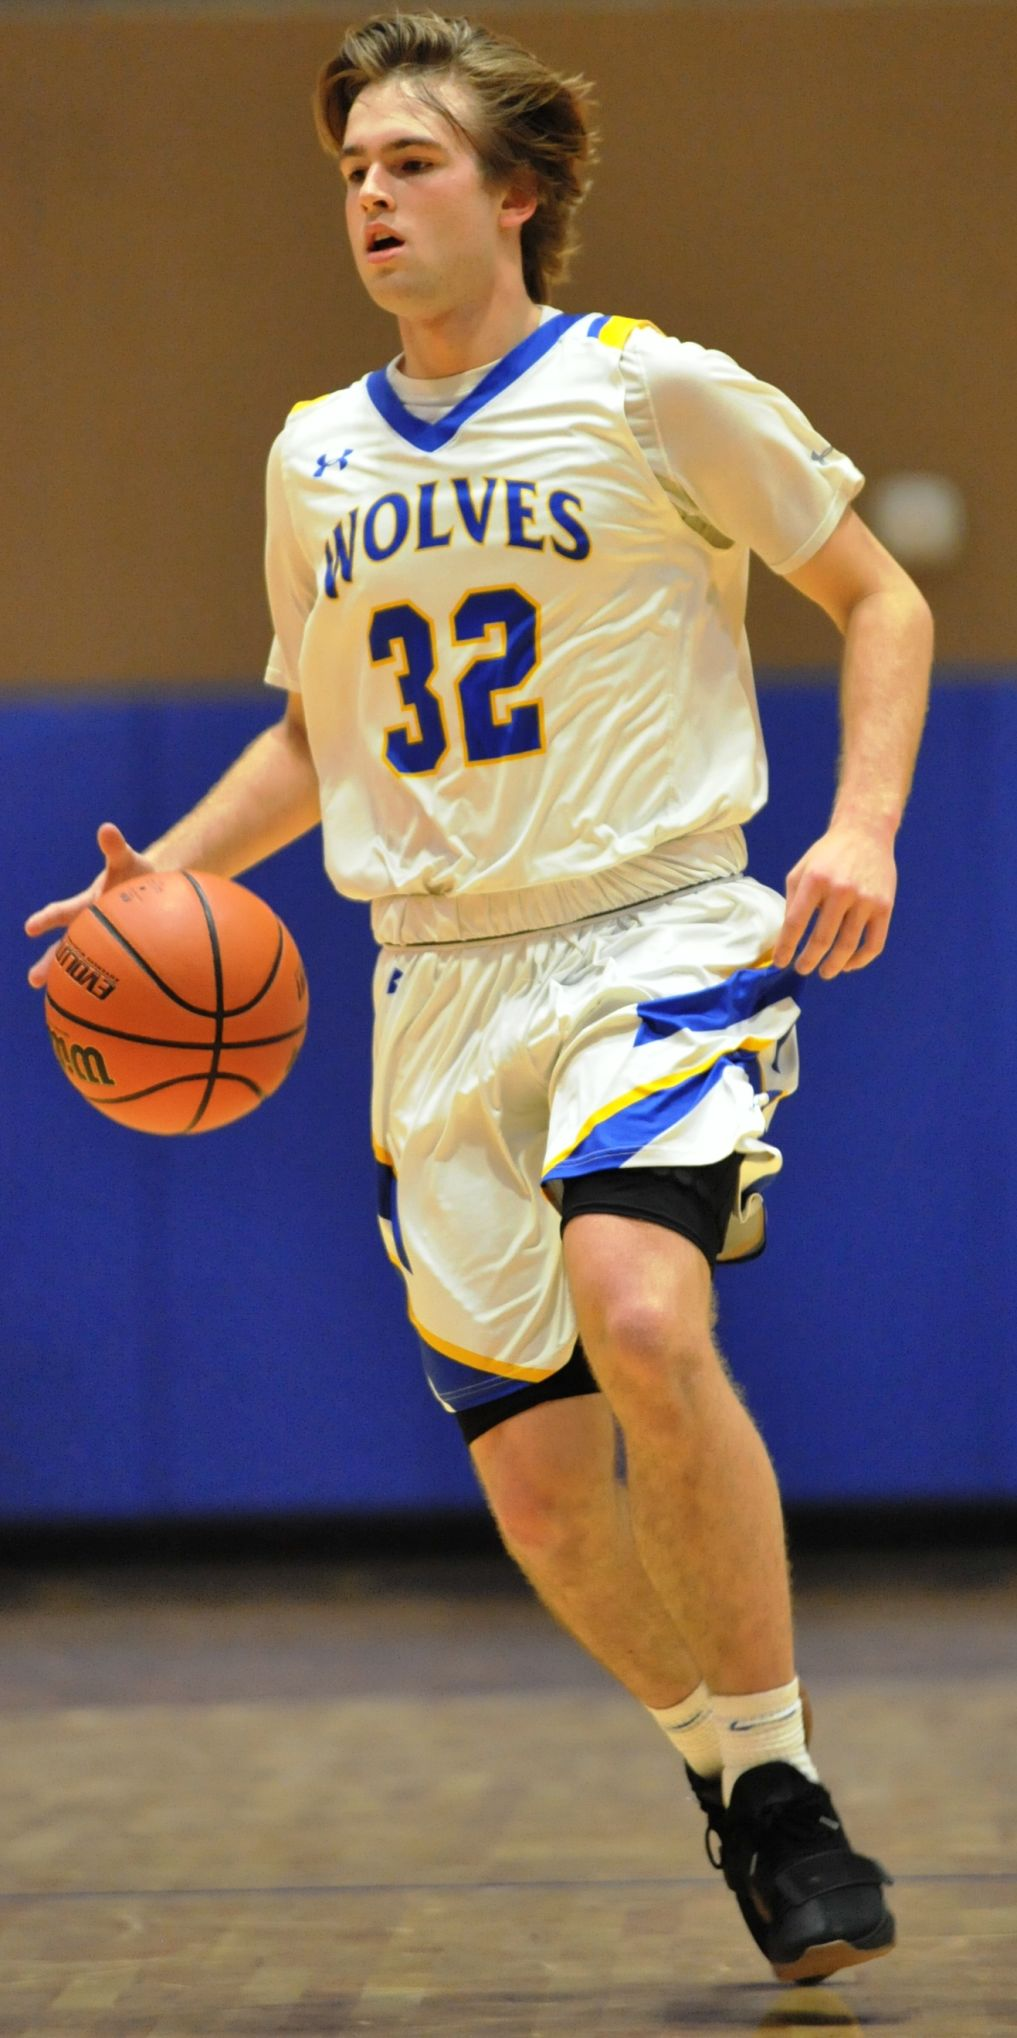 Parker Edwards (St. Paul's Boys Basketball)